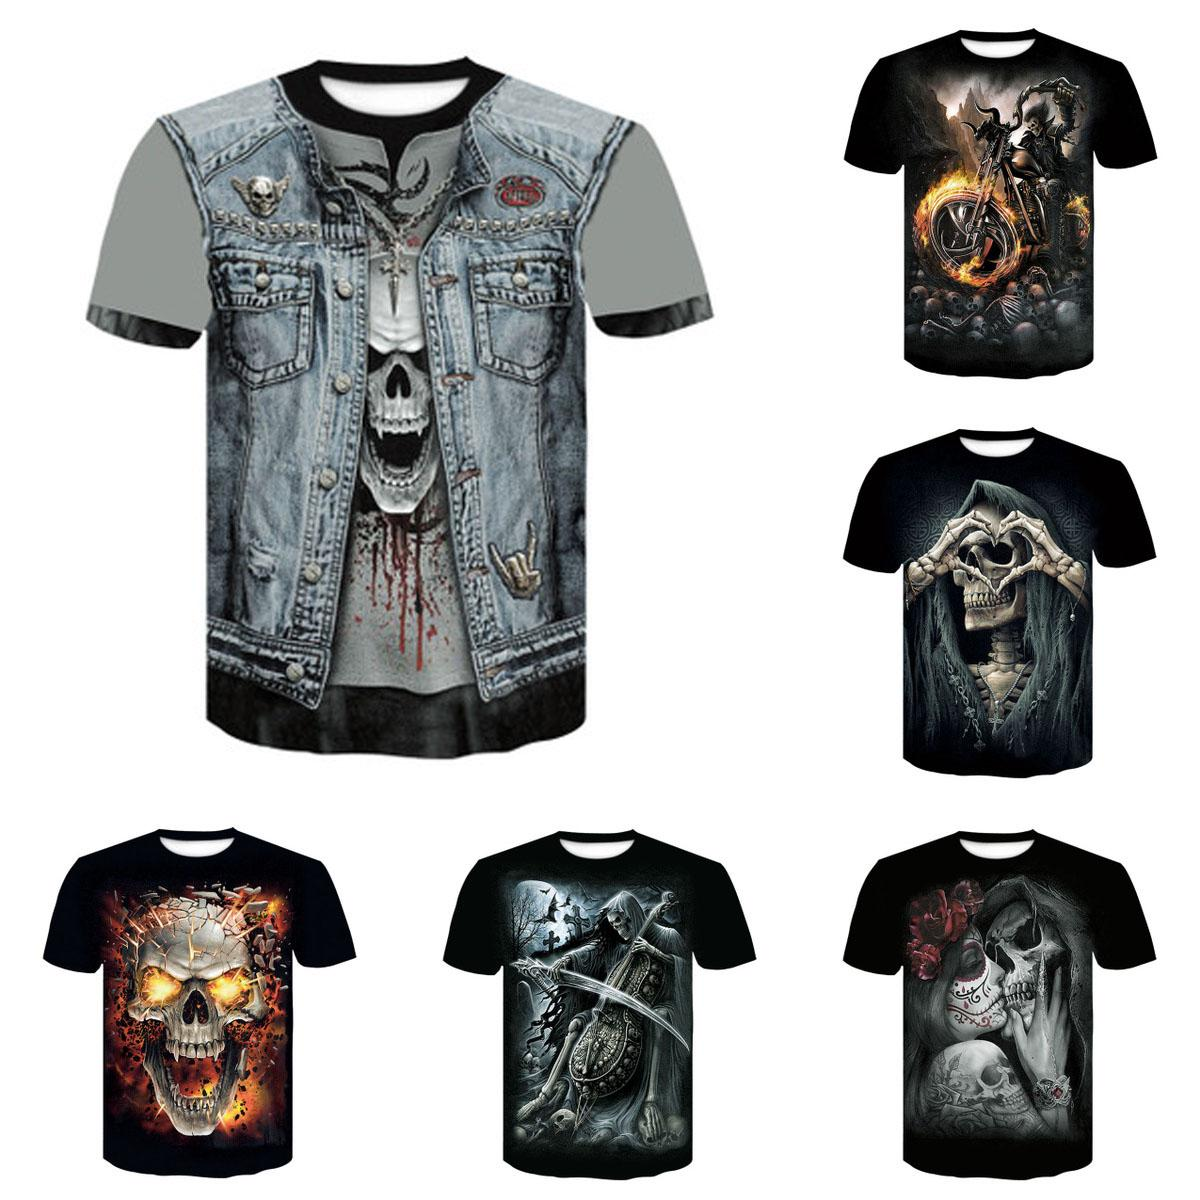 Mens Skull T Shirt 2020 New Ghost Pattern Tees Fashion Boys Streetwear Trendy Printing Boys Tees for Wholesale Top Quality DIY Clothes